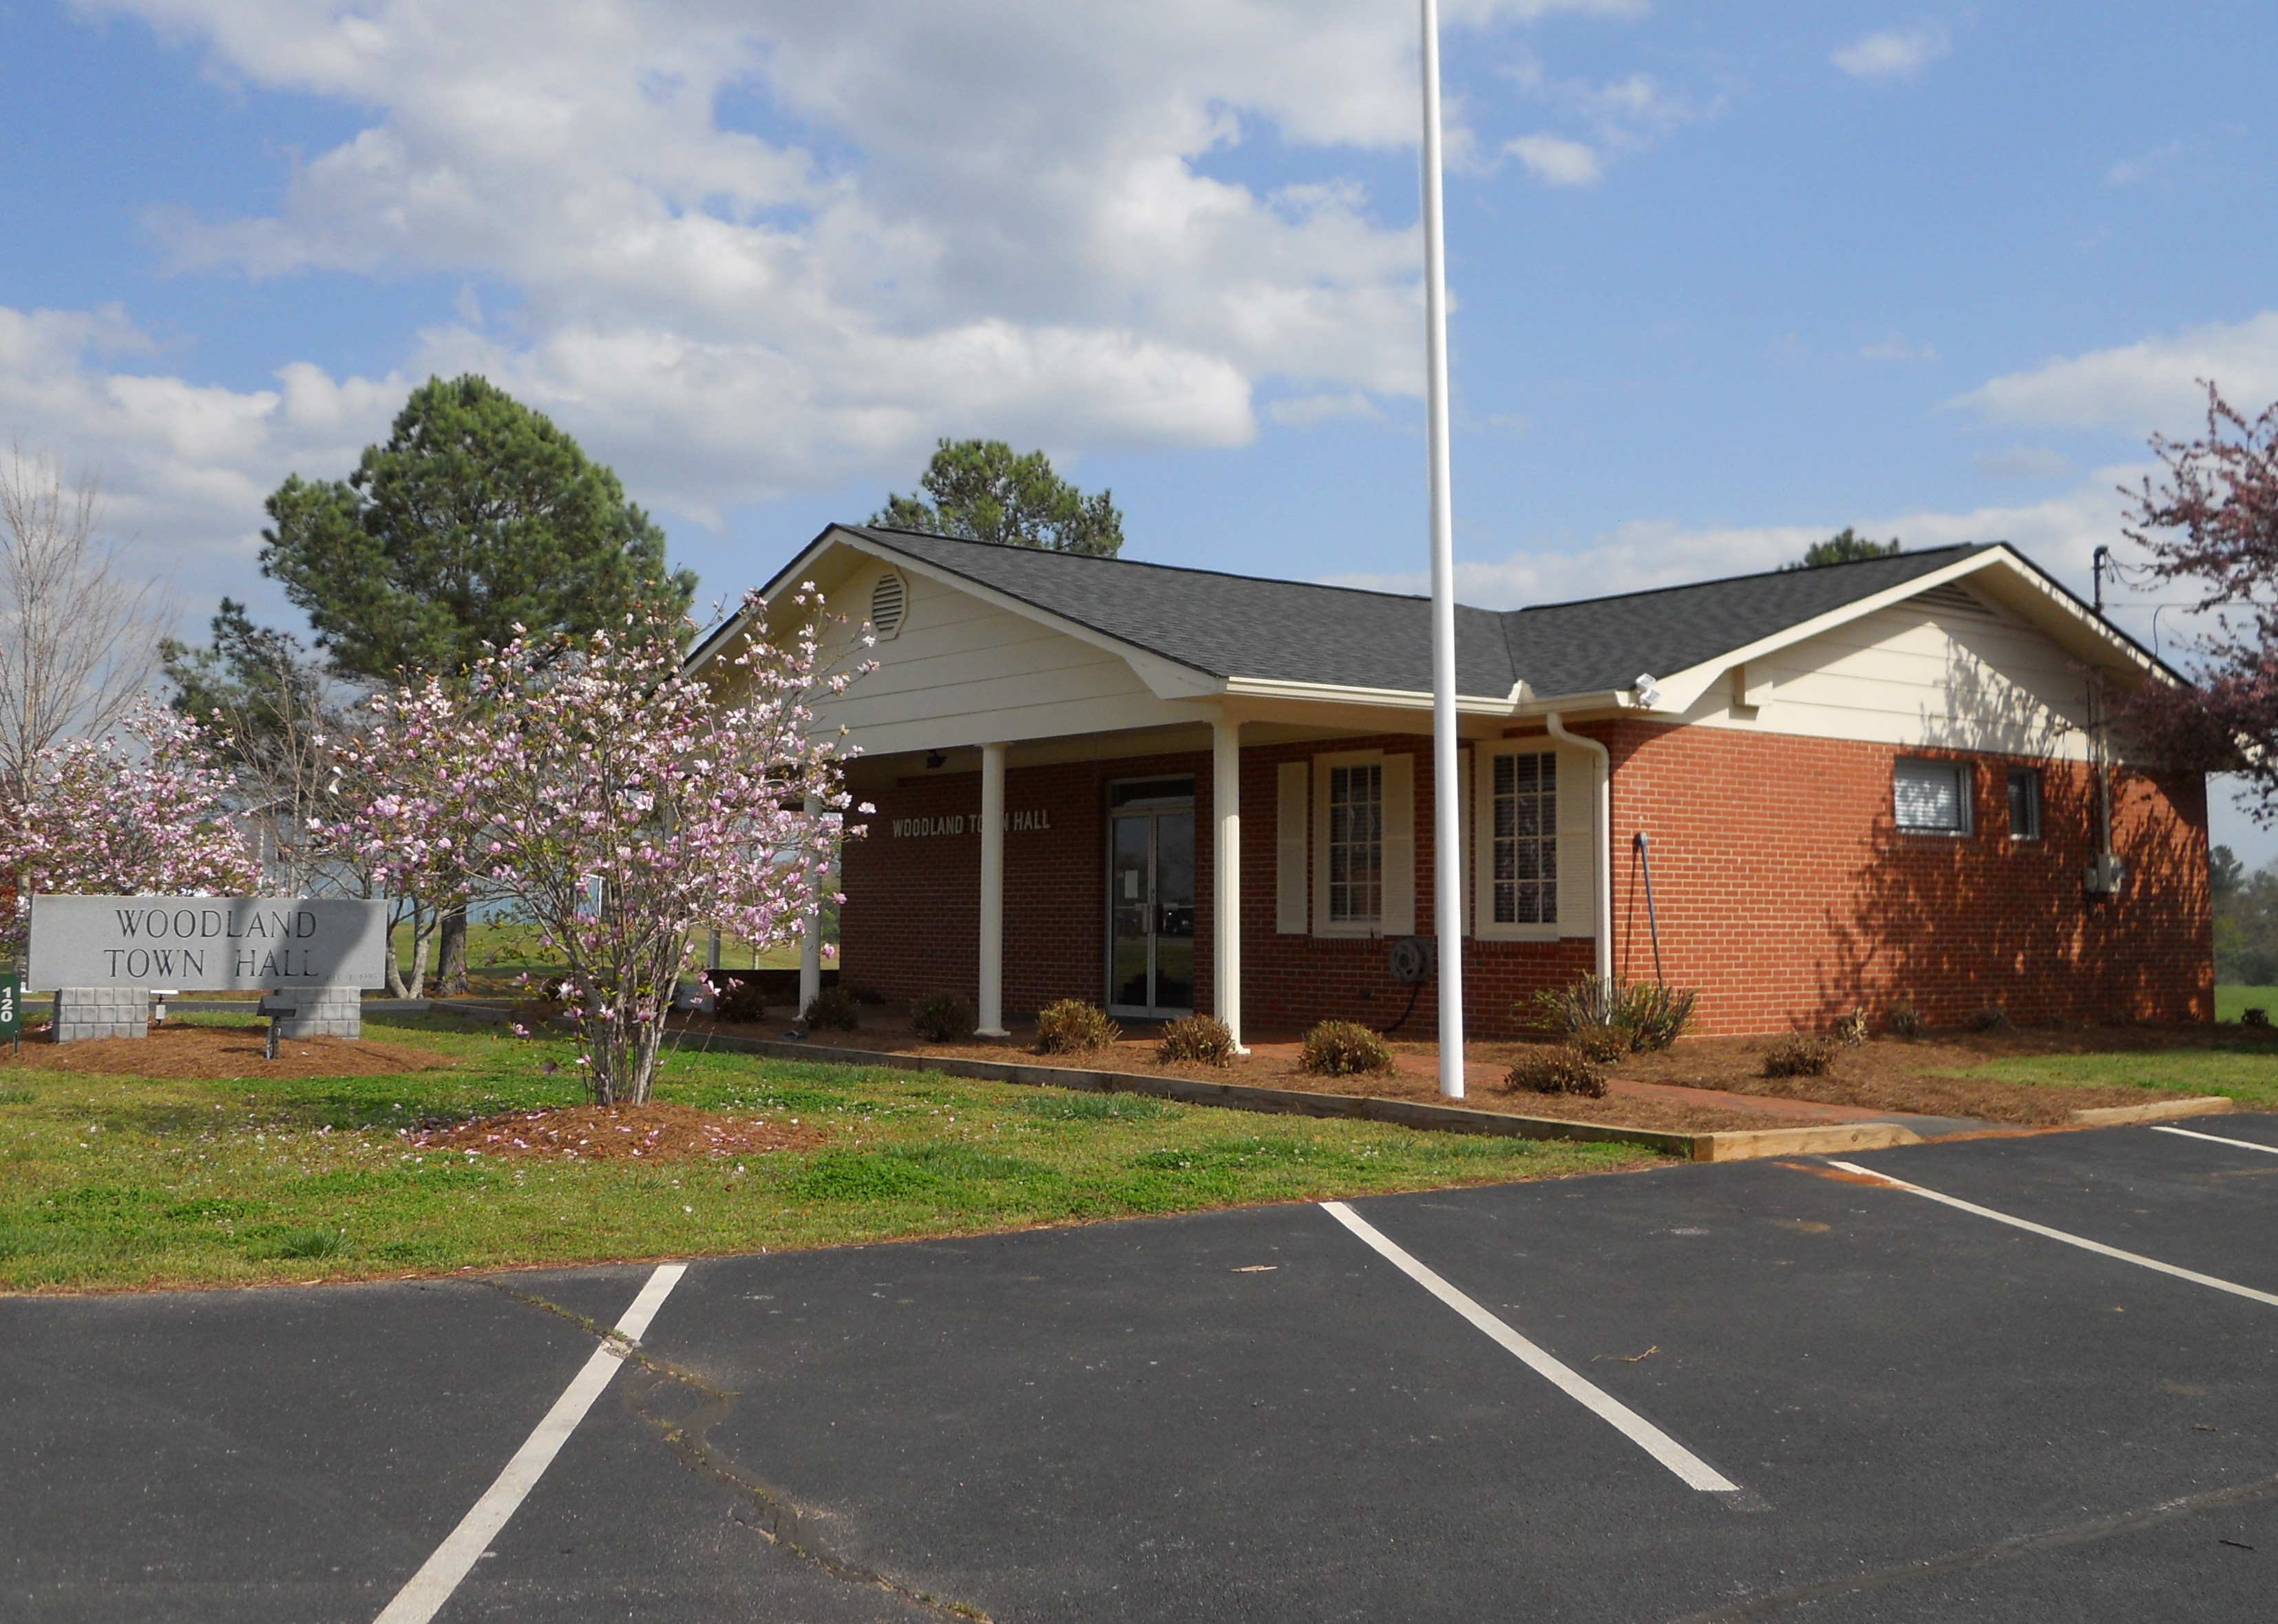 File:Woodland Alabama Town Hall.JPG - Wikipedia, the free encyclopediawoodland town